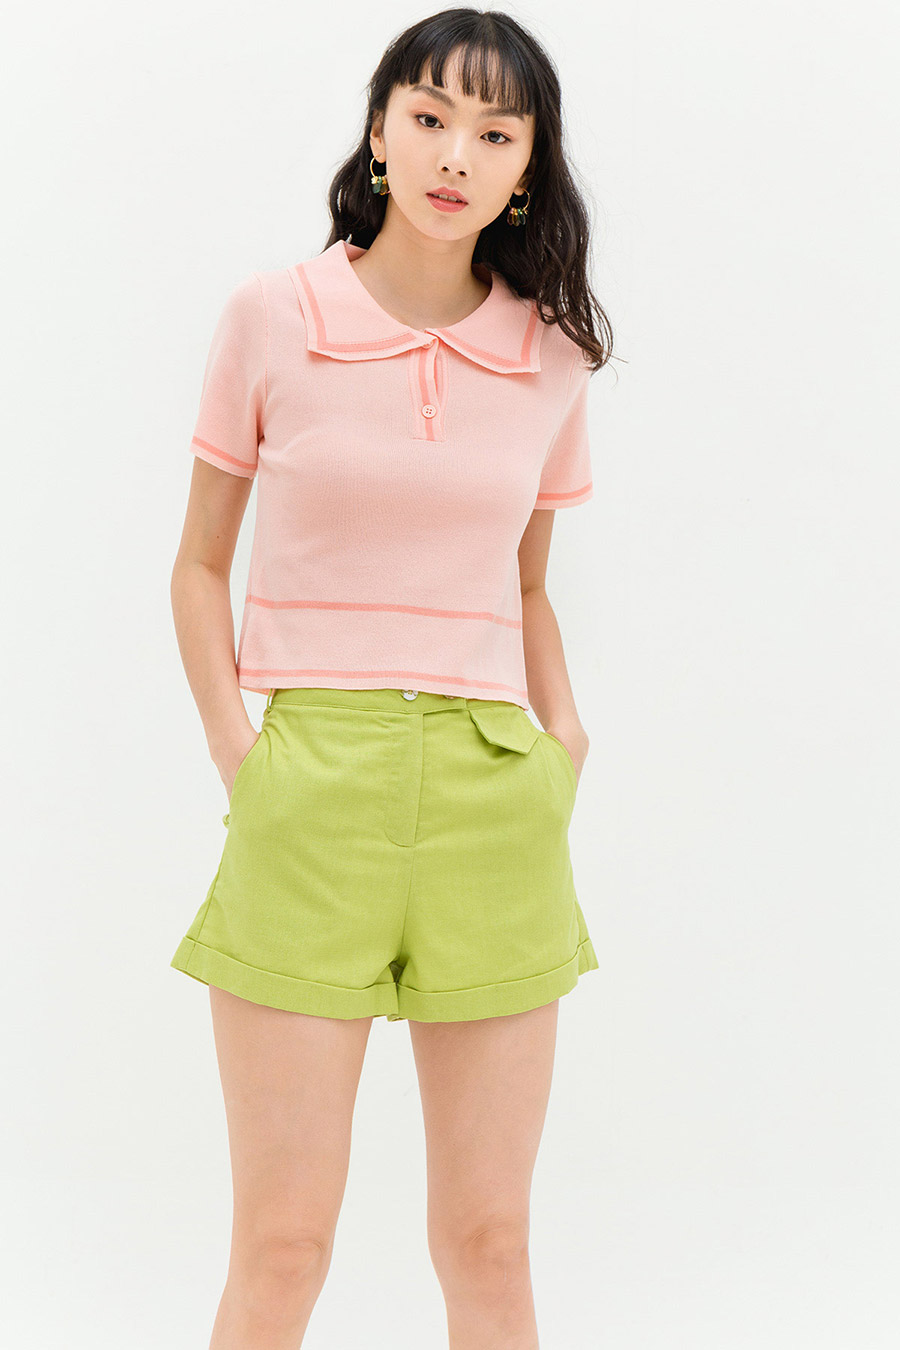 LIZETTE TOP - PATIO PINK